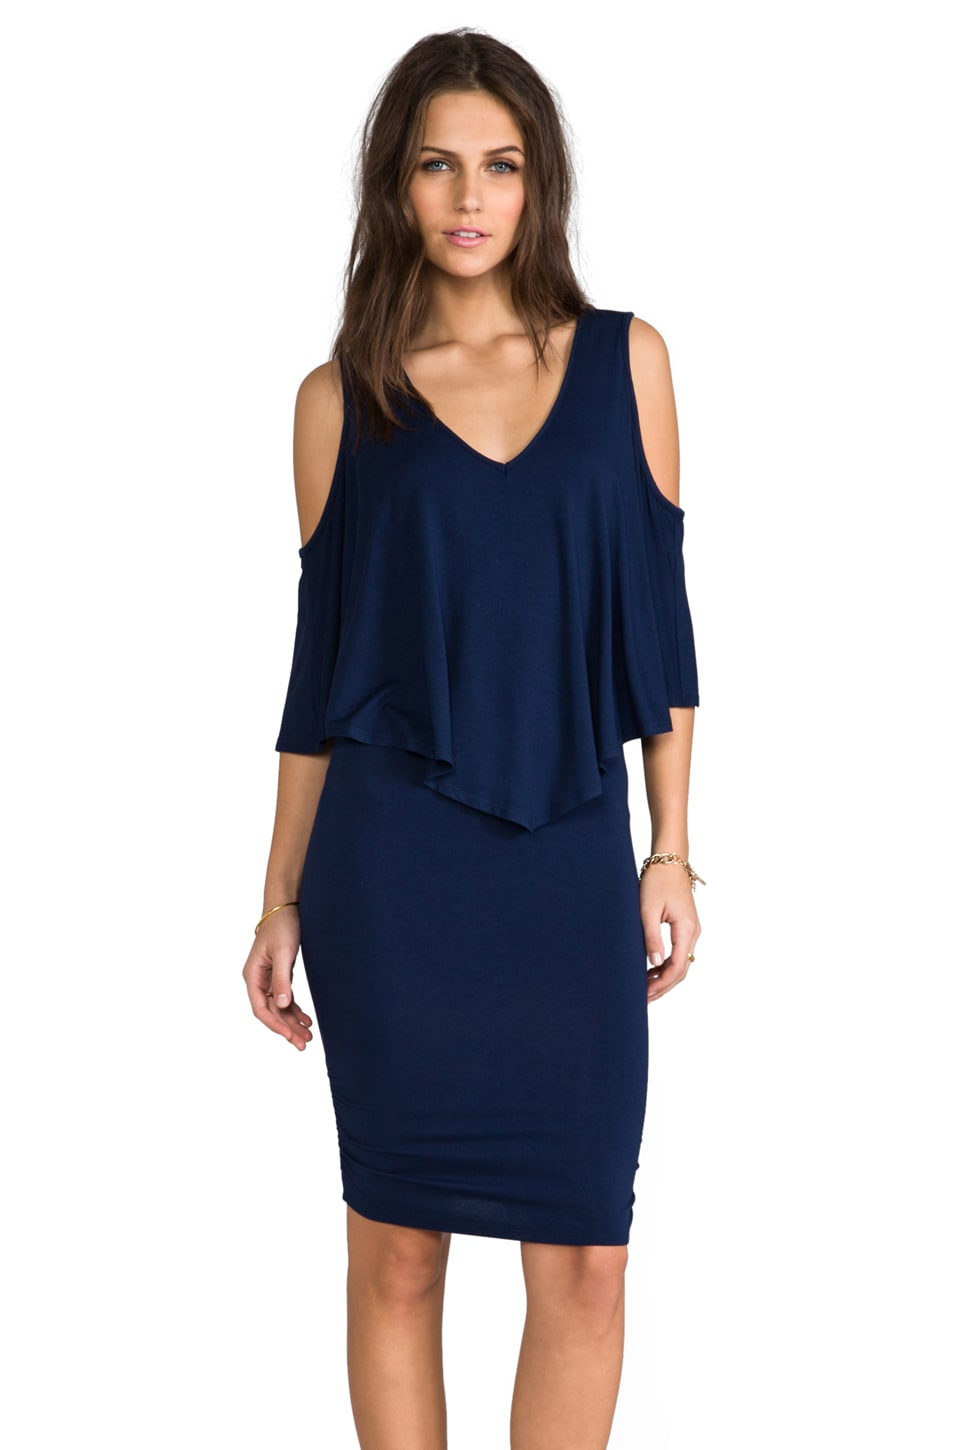 James & Joy Hazel Mini Dress in Navy